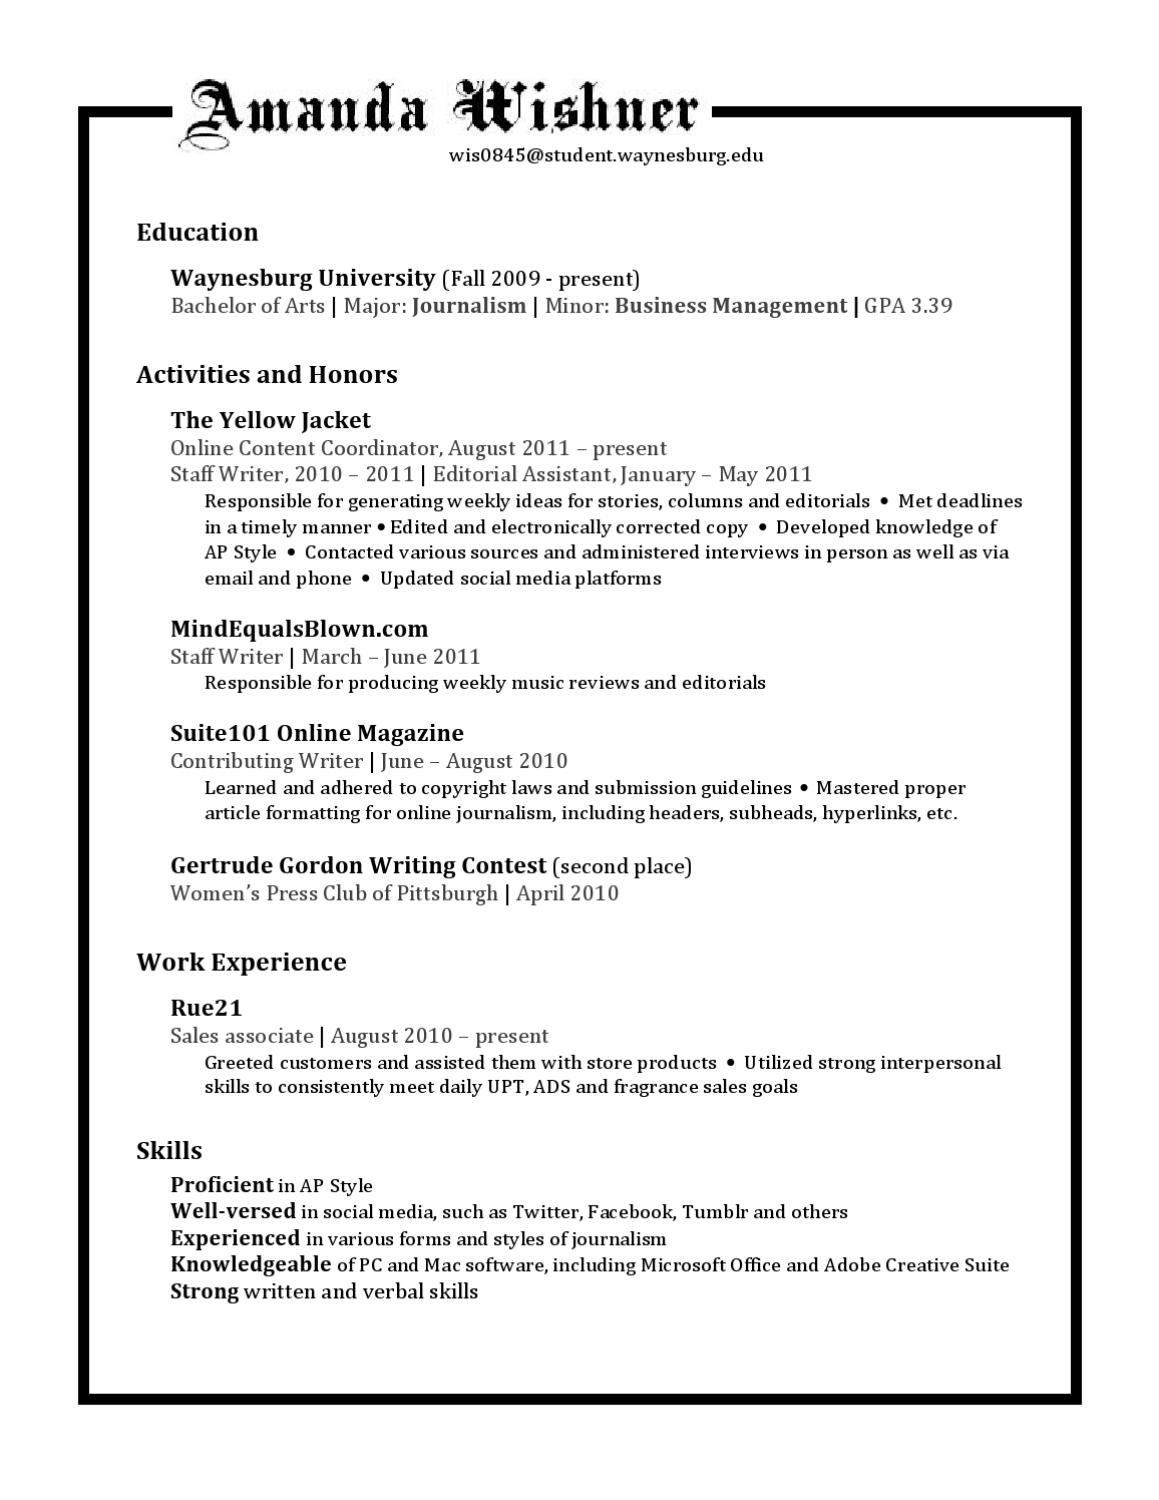 My Resume by Amanda W - issuu